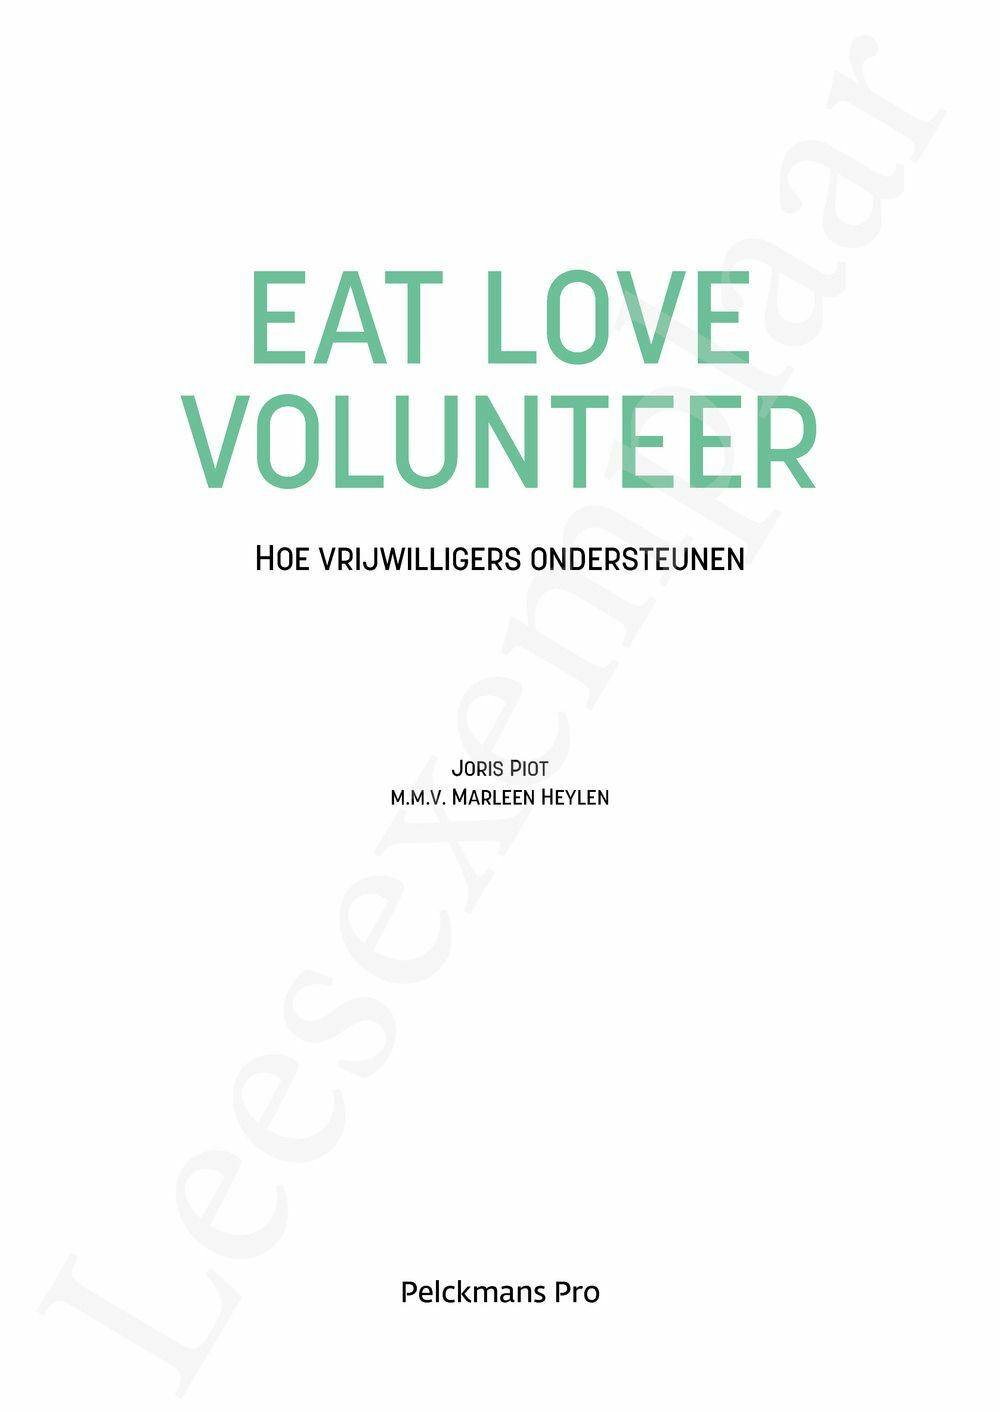 Preview: Eat love volunteer